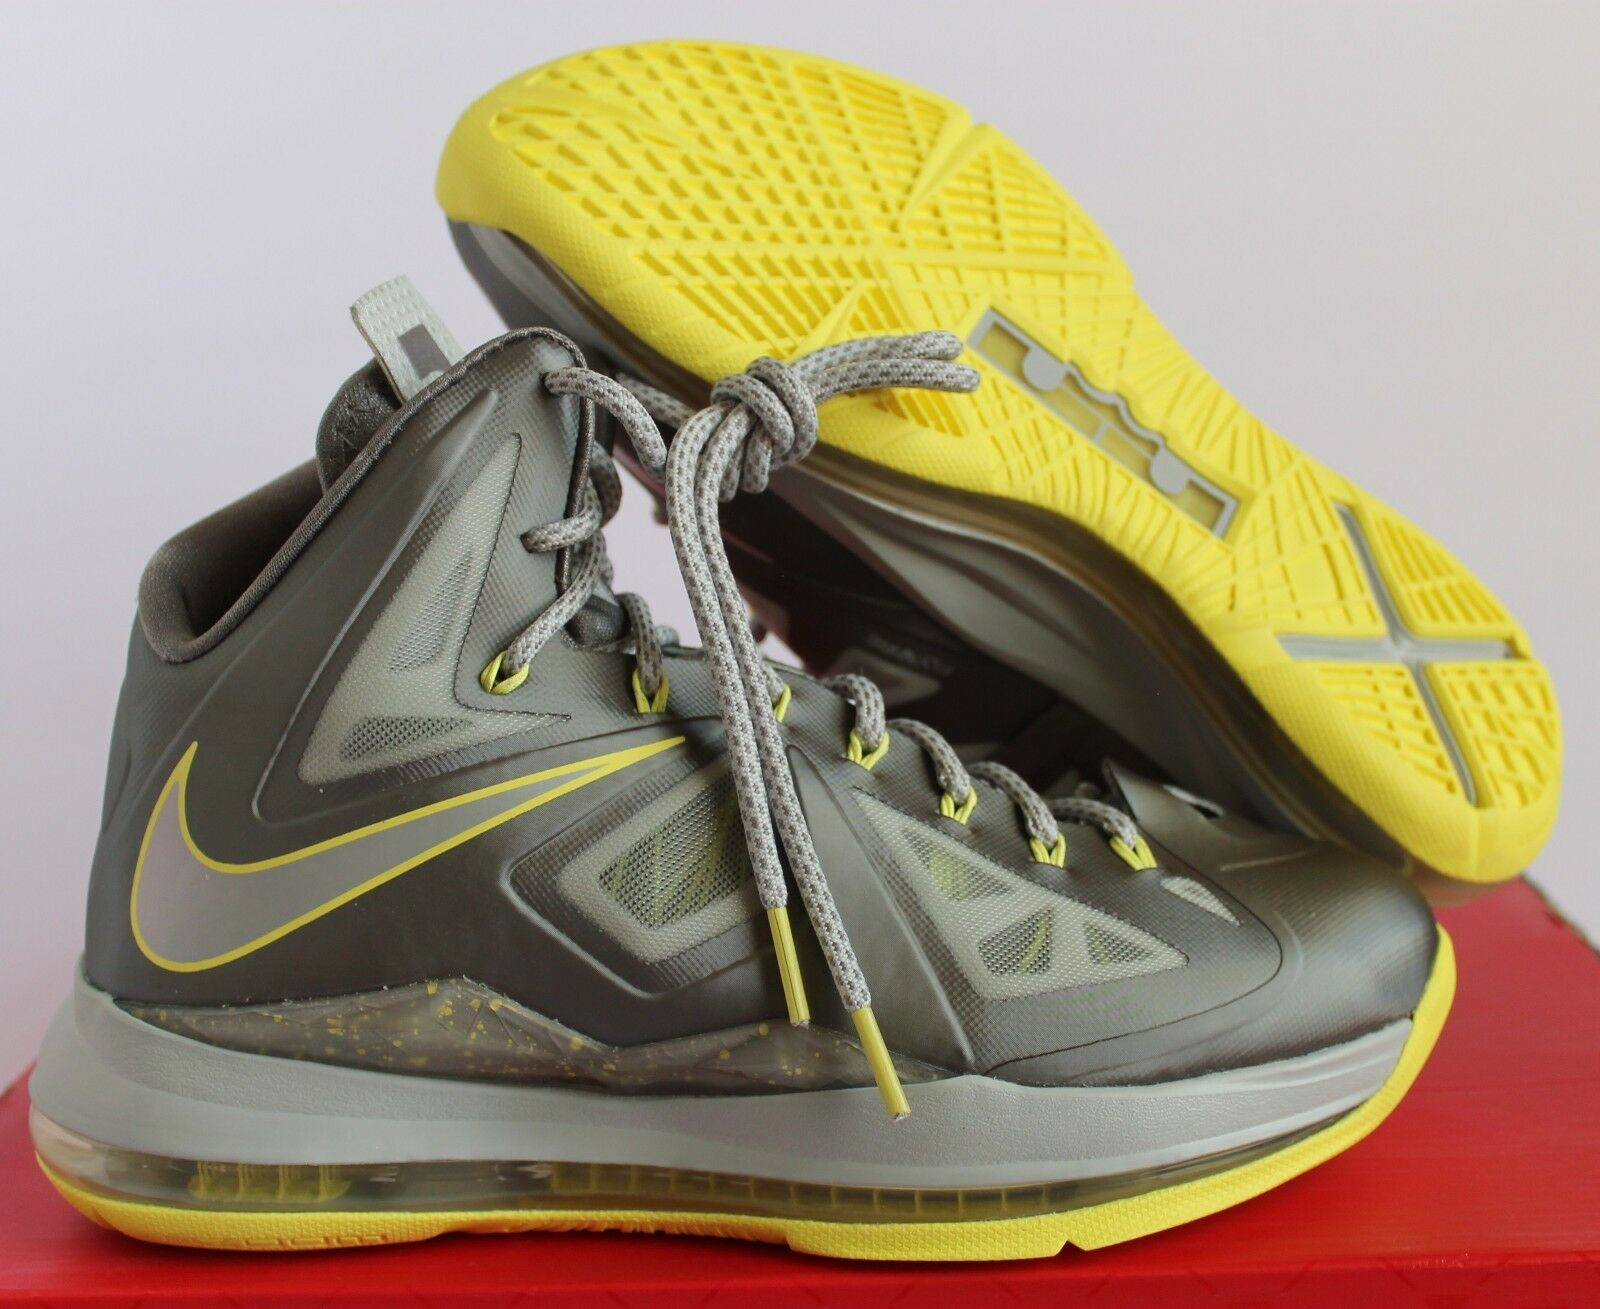 NIKE LEBRON 10 X CANARY DIAMOND SPORT grau-ELECTRIC Gelb SZ 7